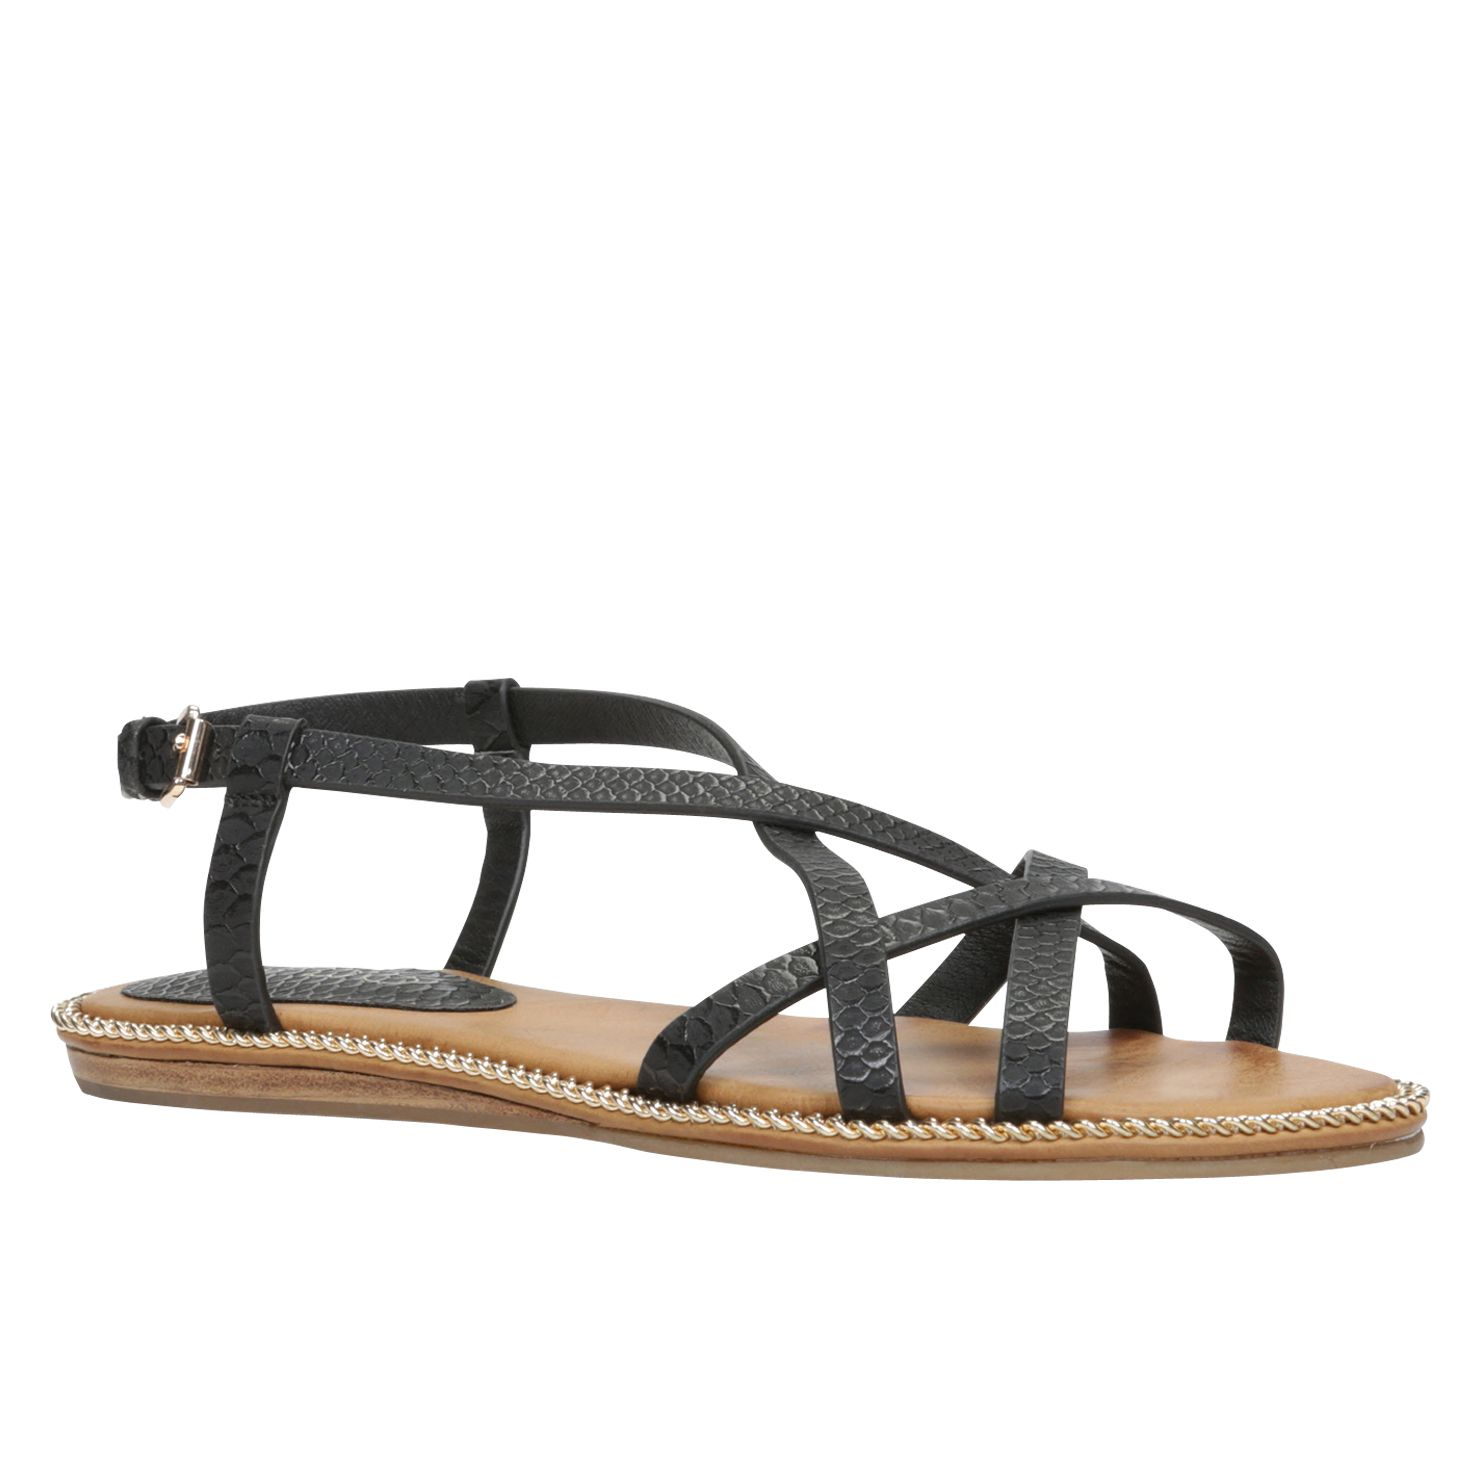 Free shipping BOTH ways on black strappy sandals, from our vast selection of styles. Fast delivery, and 24/7/ real-person service with a smile. Click or call